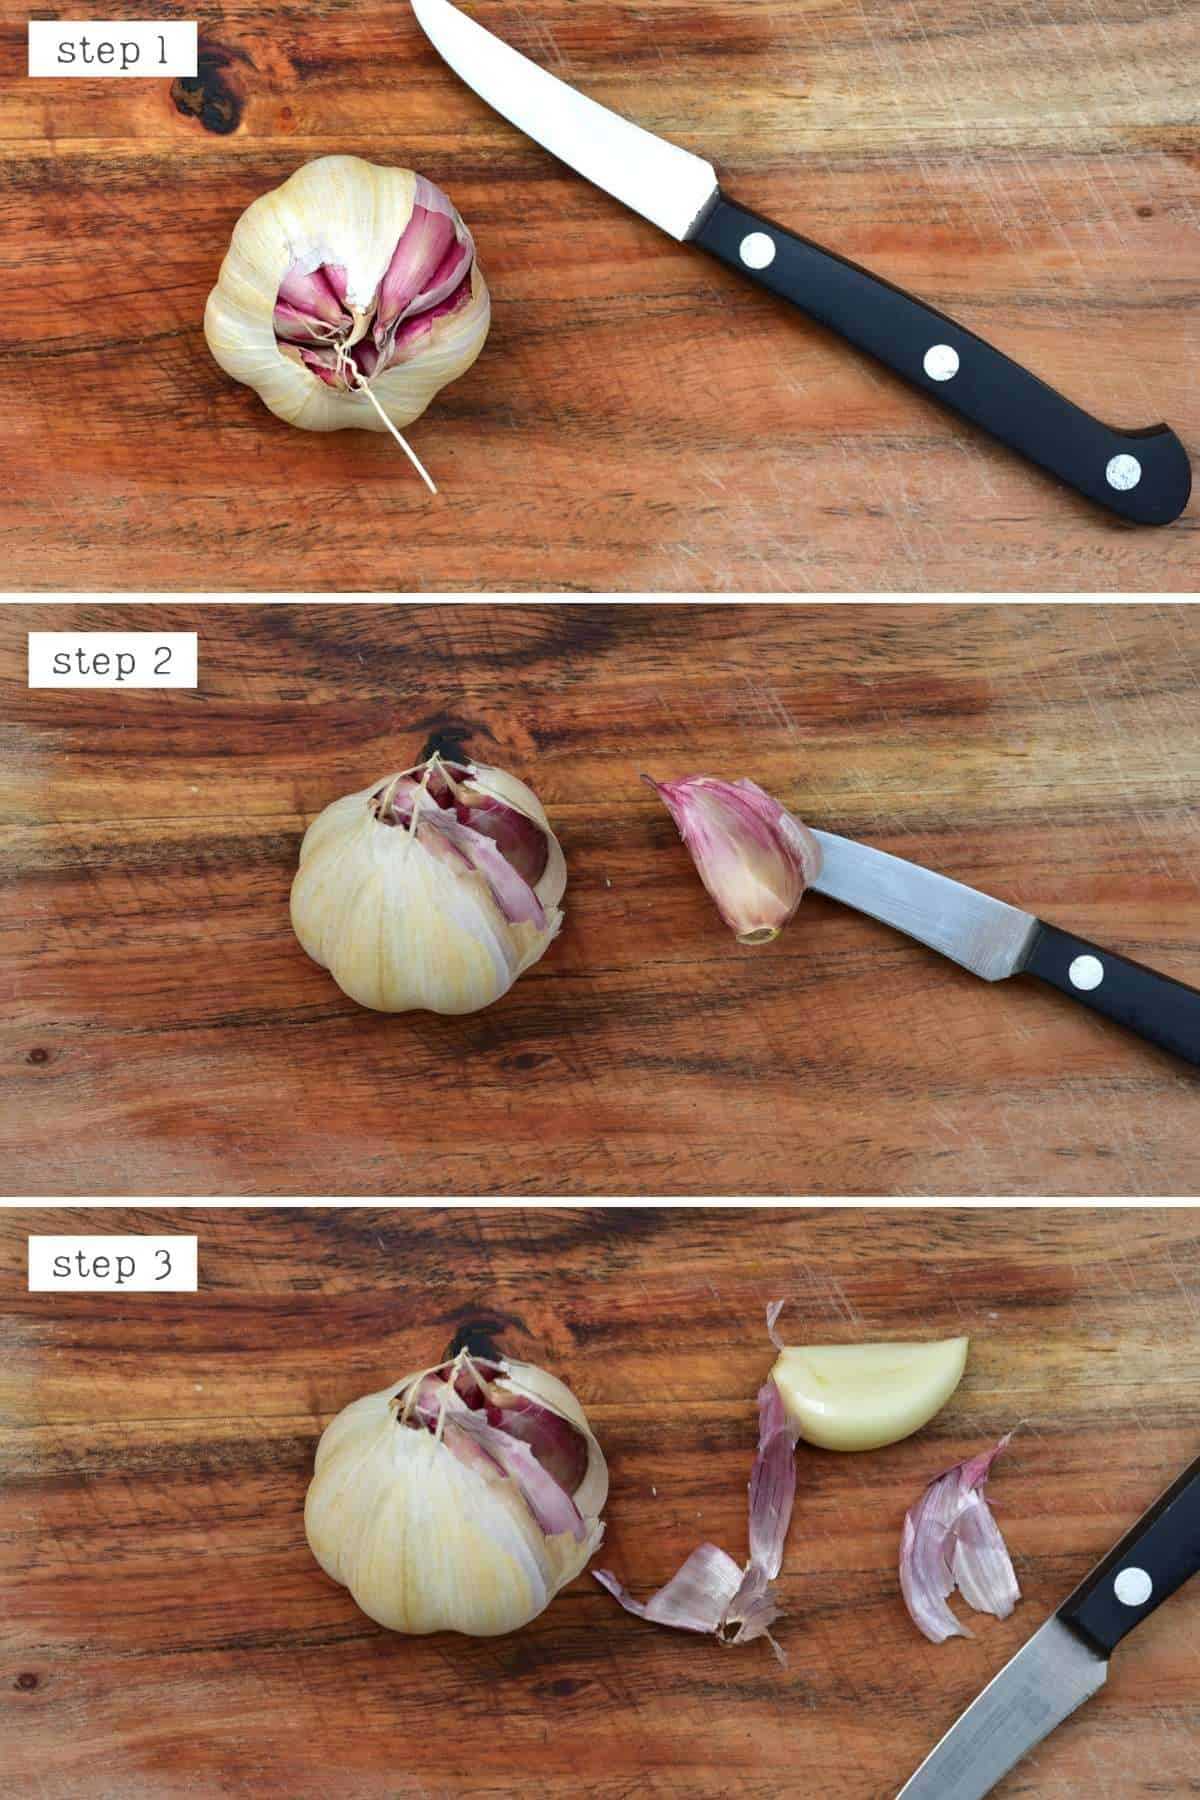 Steps for peeling garlic with a paring knife